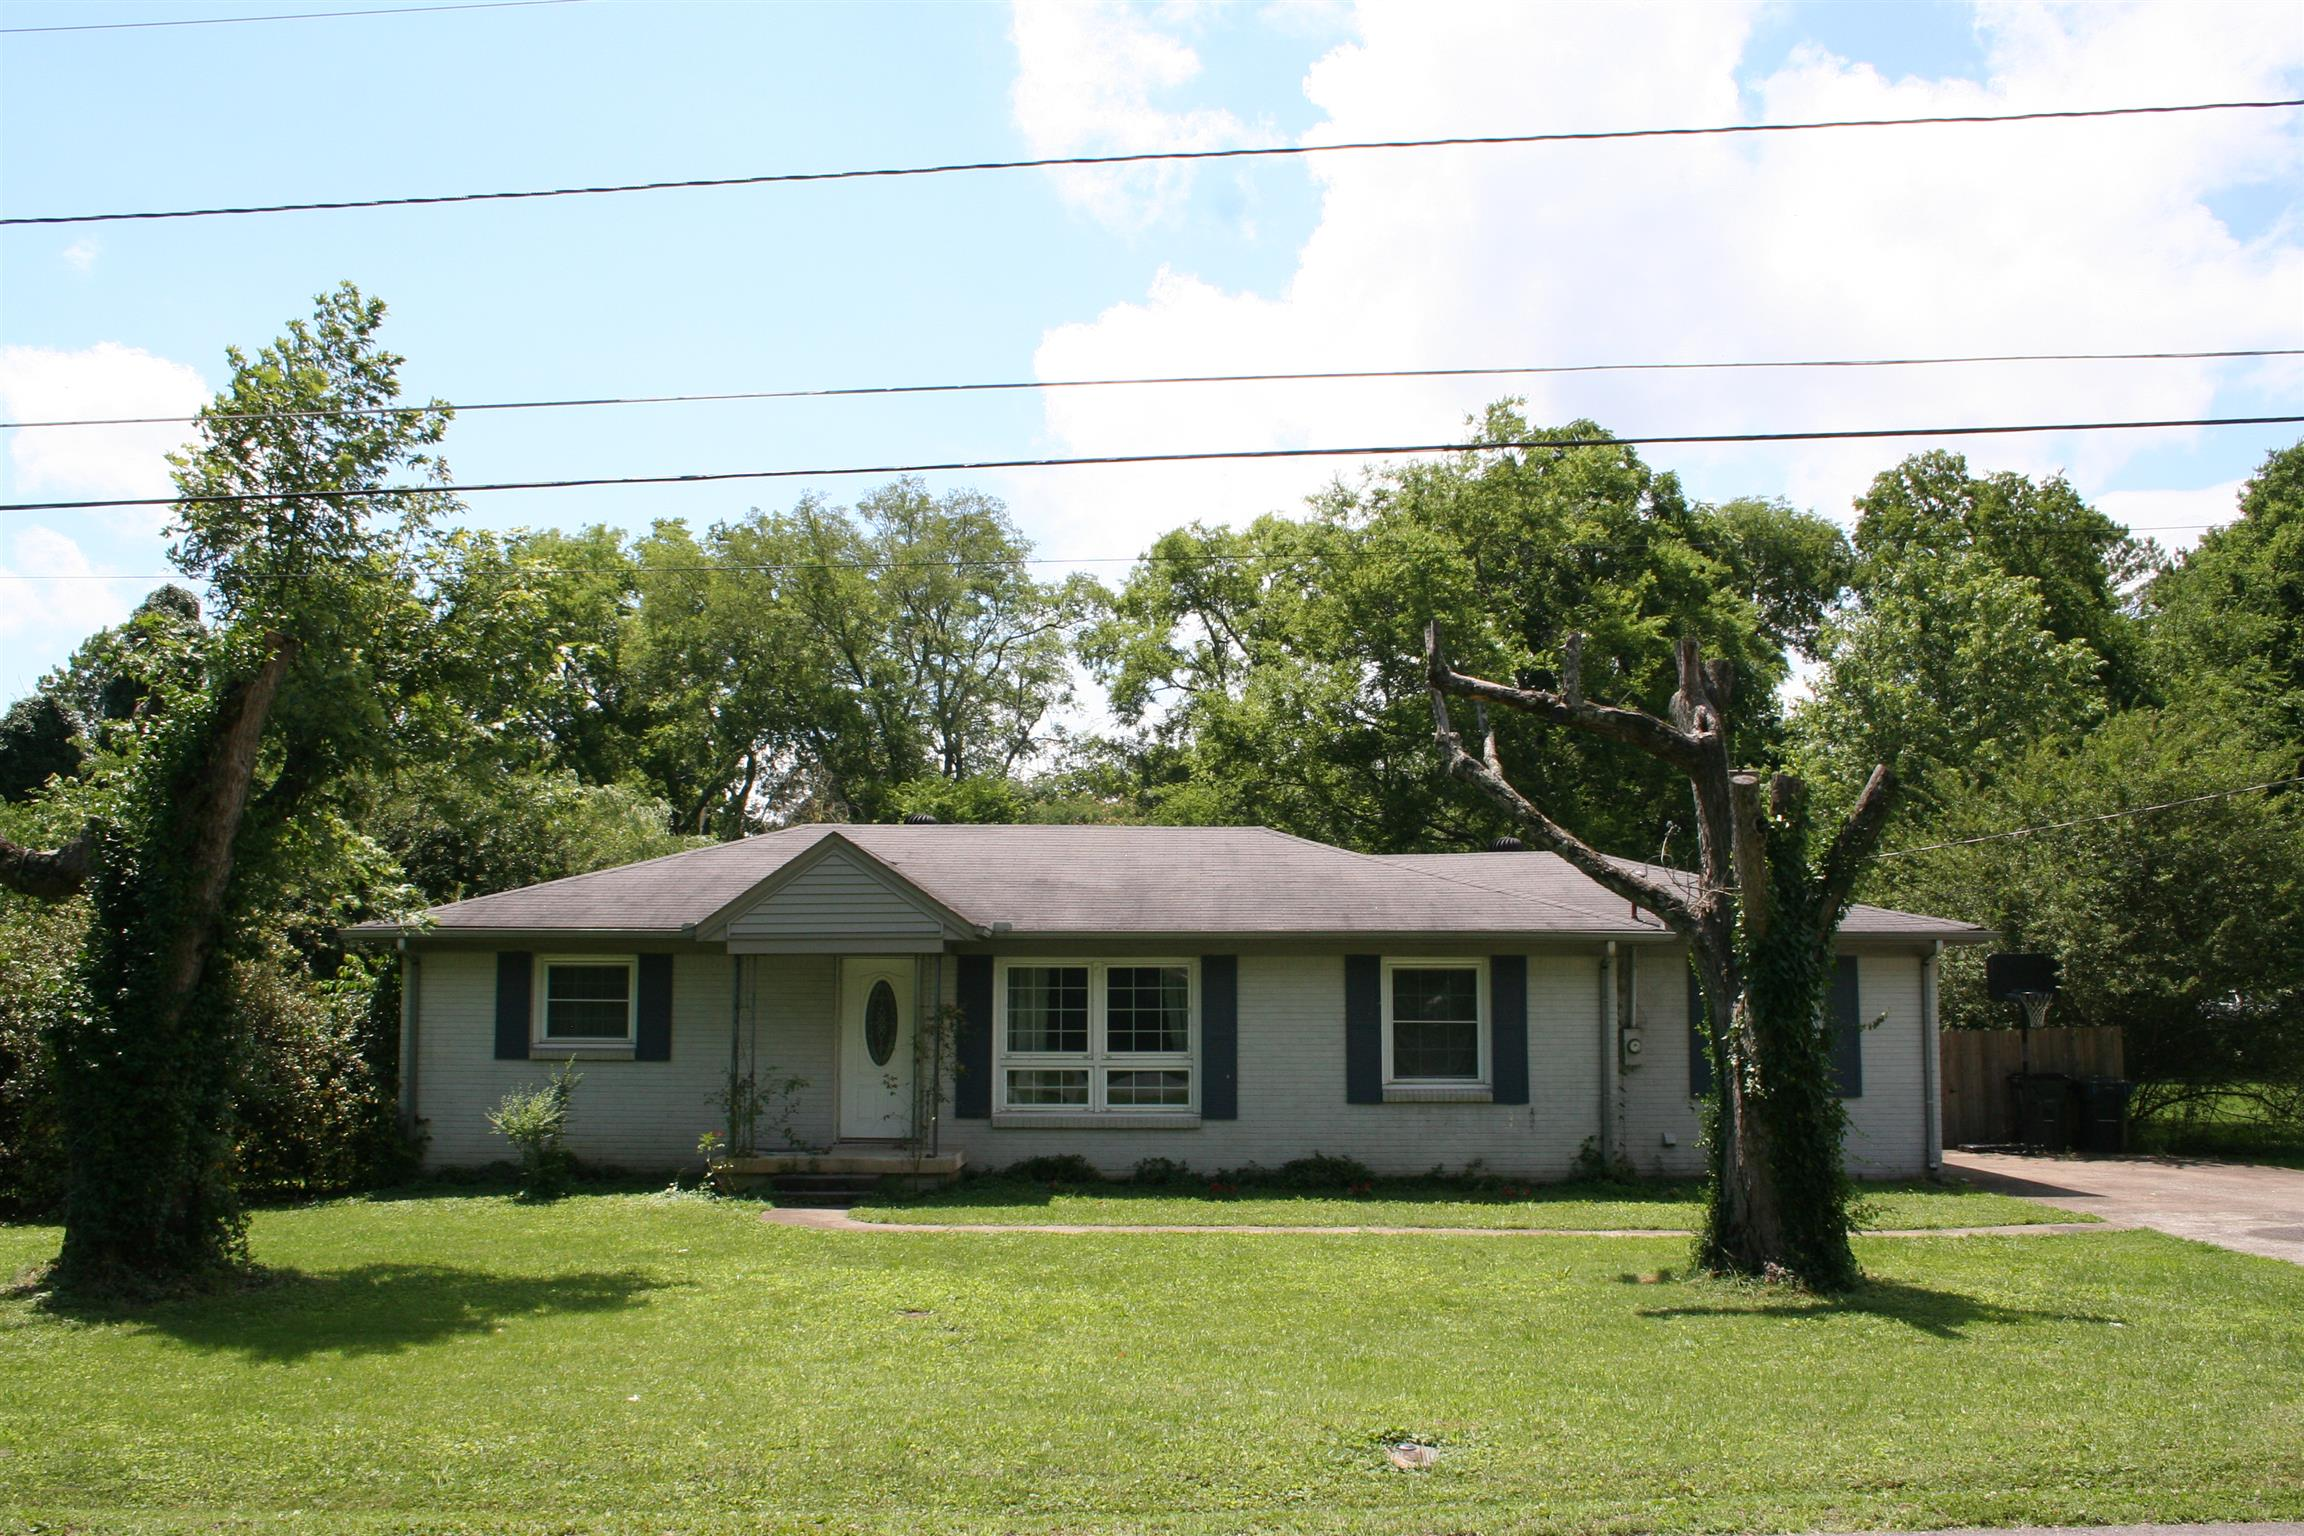 950 Spencer Ave, Gallatin in Sumner County County, TN 37066 Home for Sale